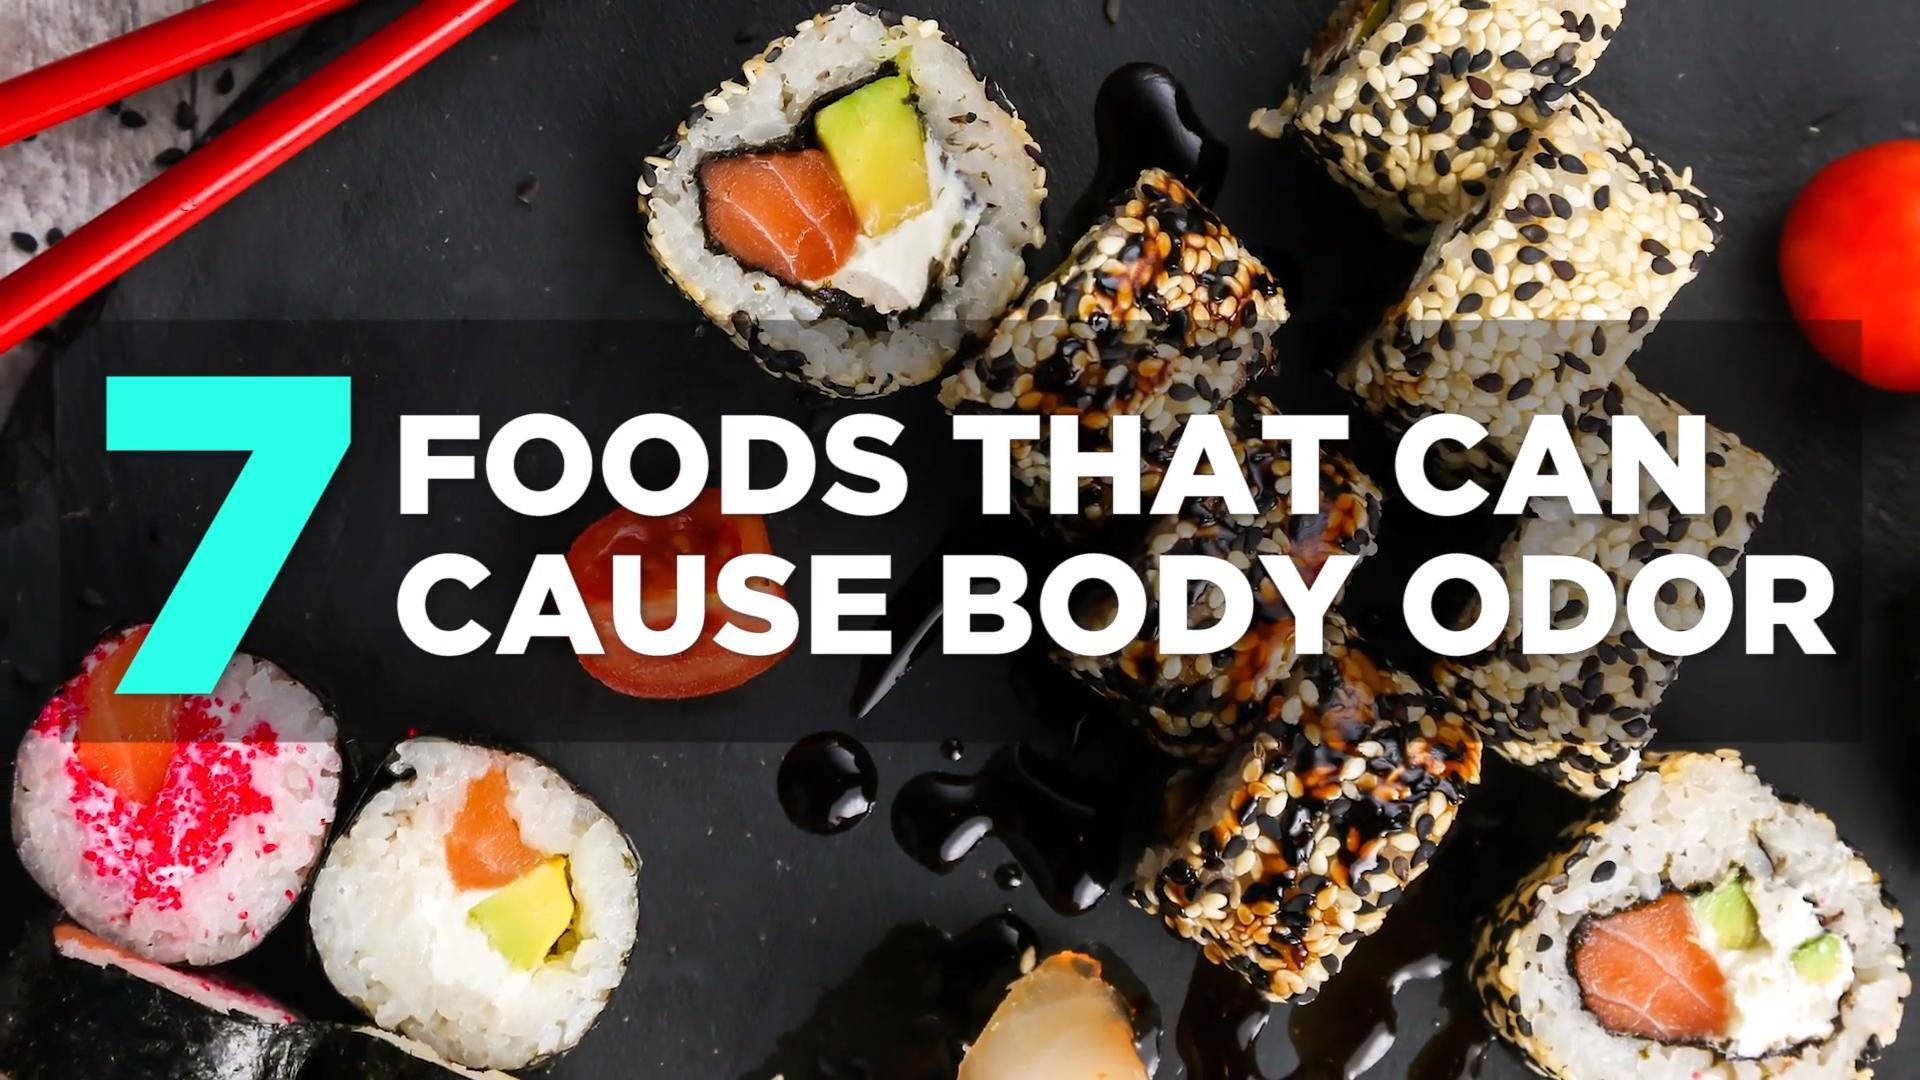 Foods that cause body odor